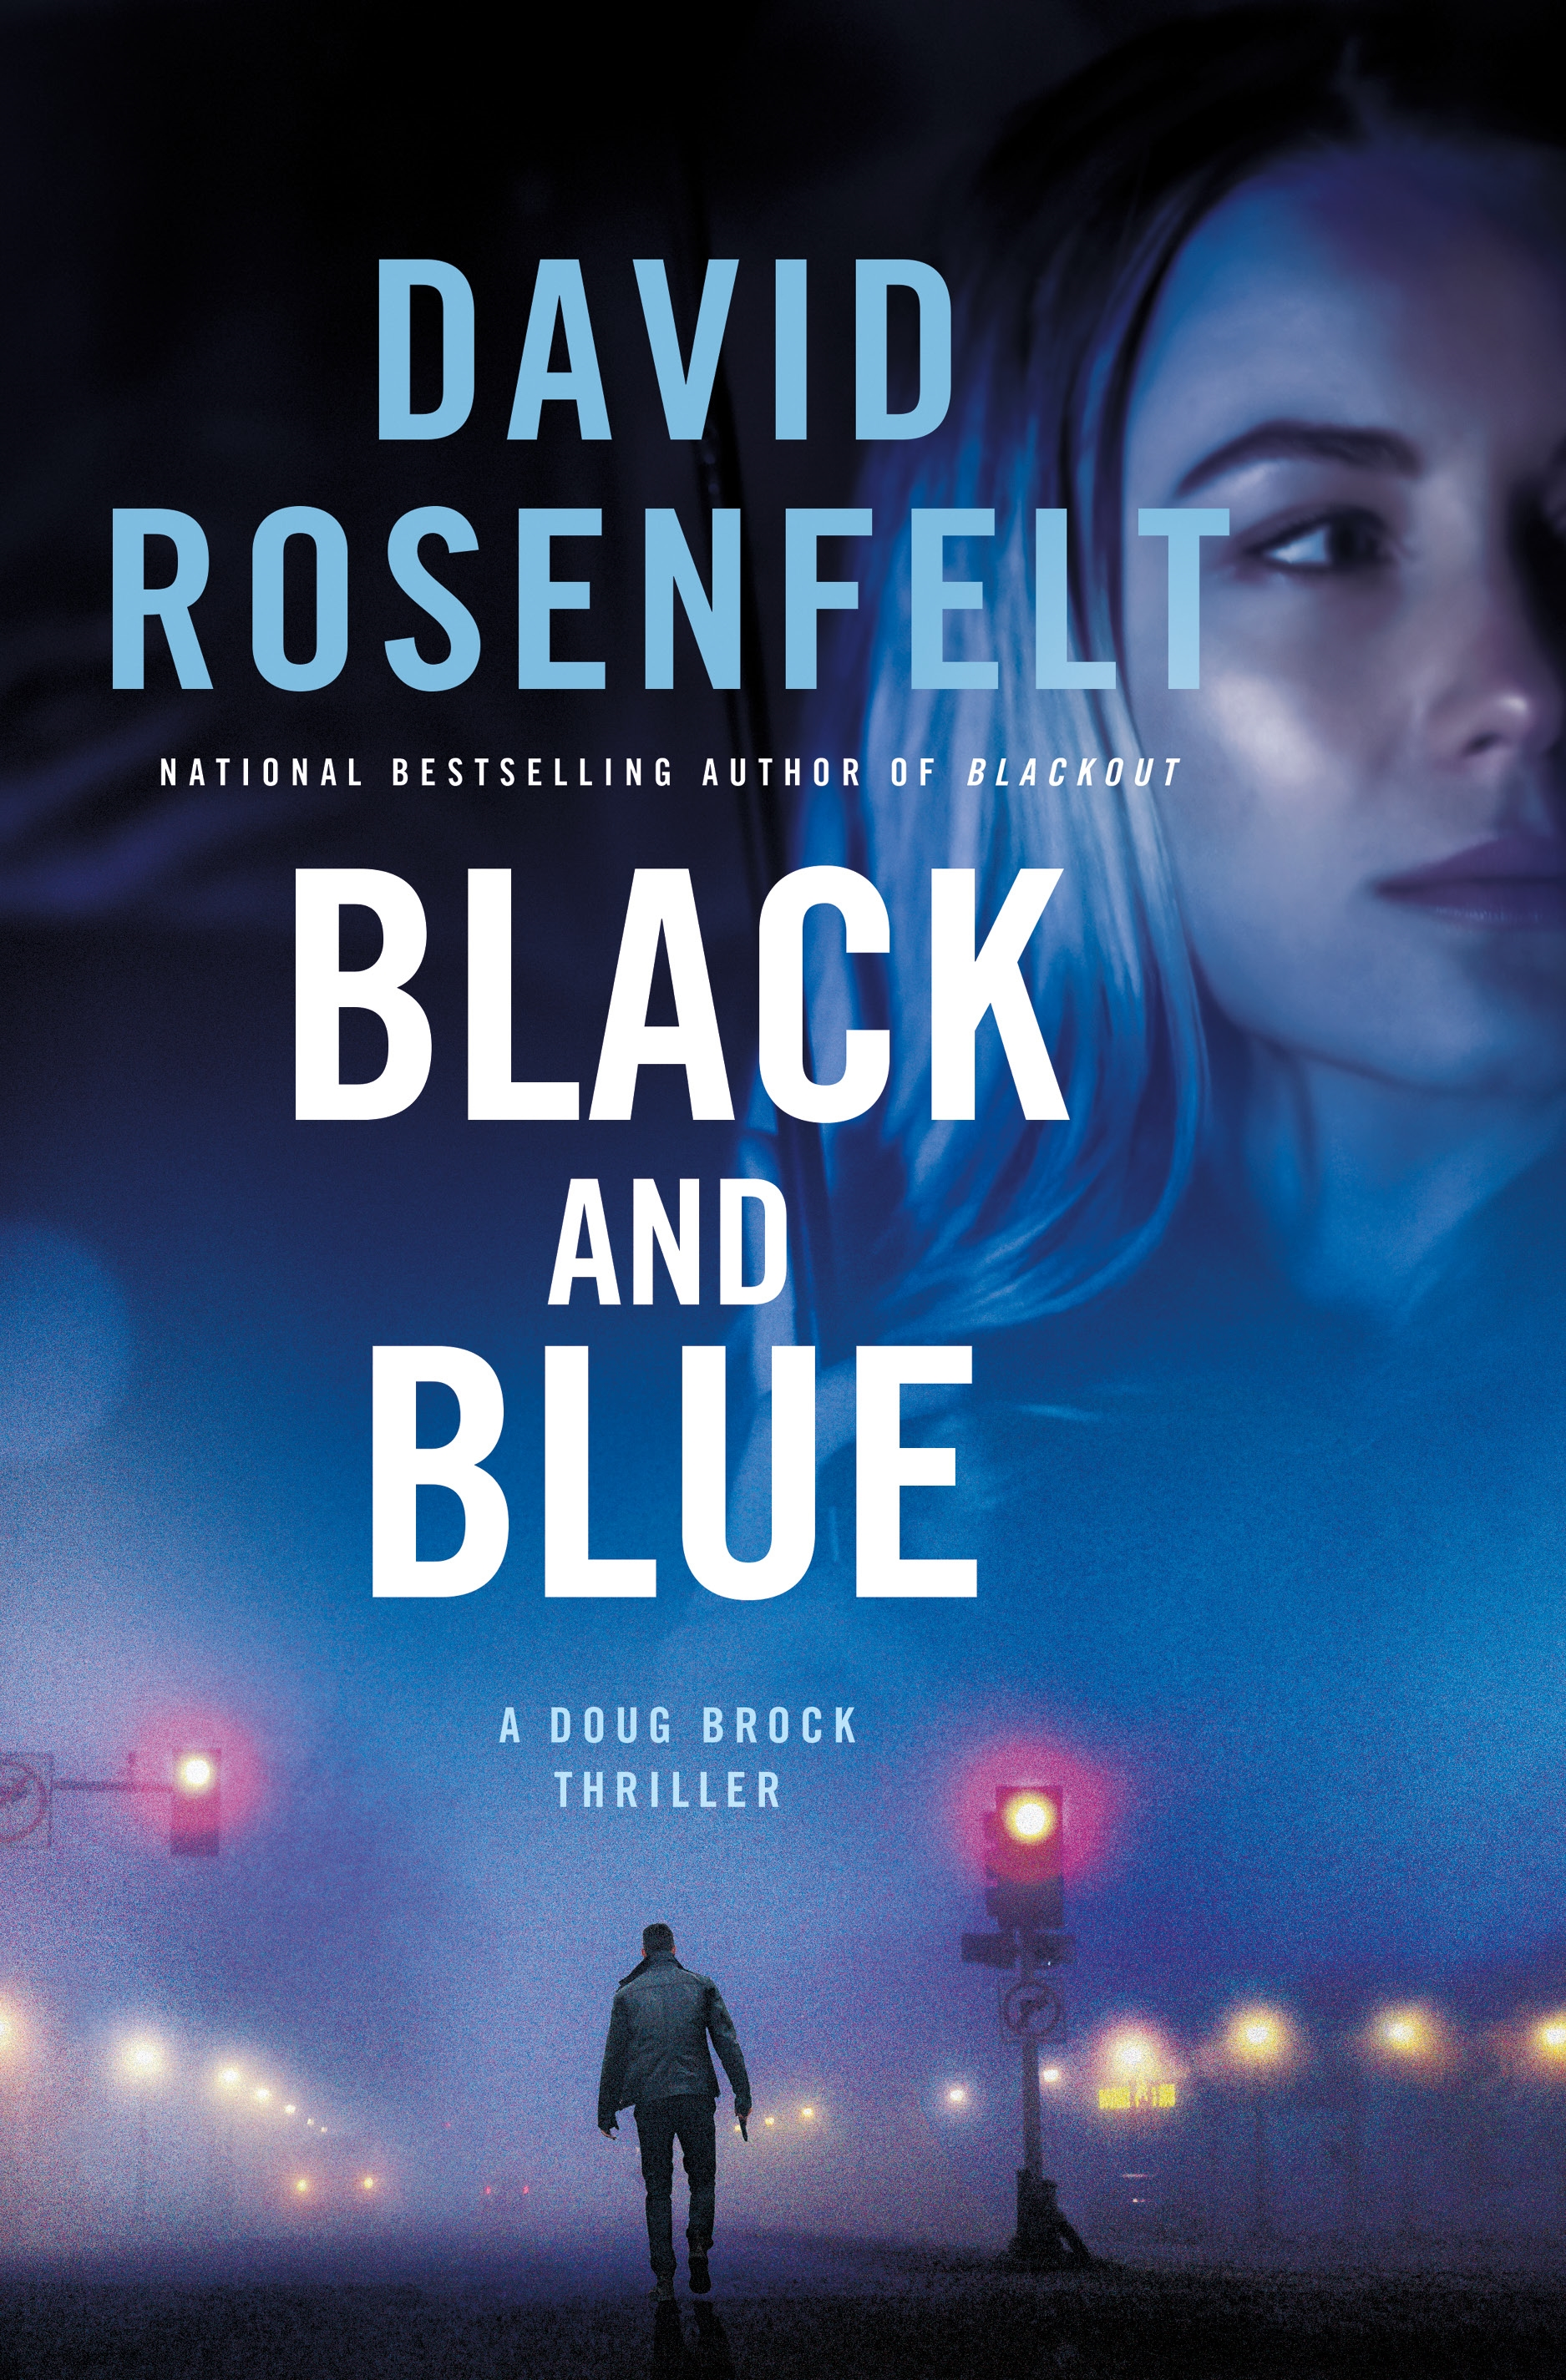 Black and blue a Doug Brock thriller cover image